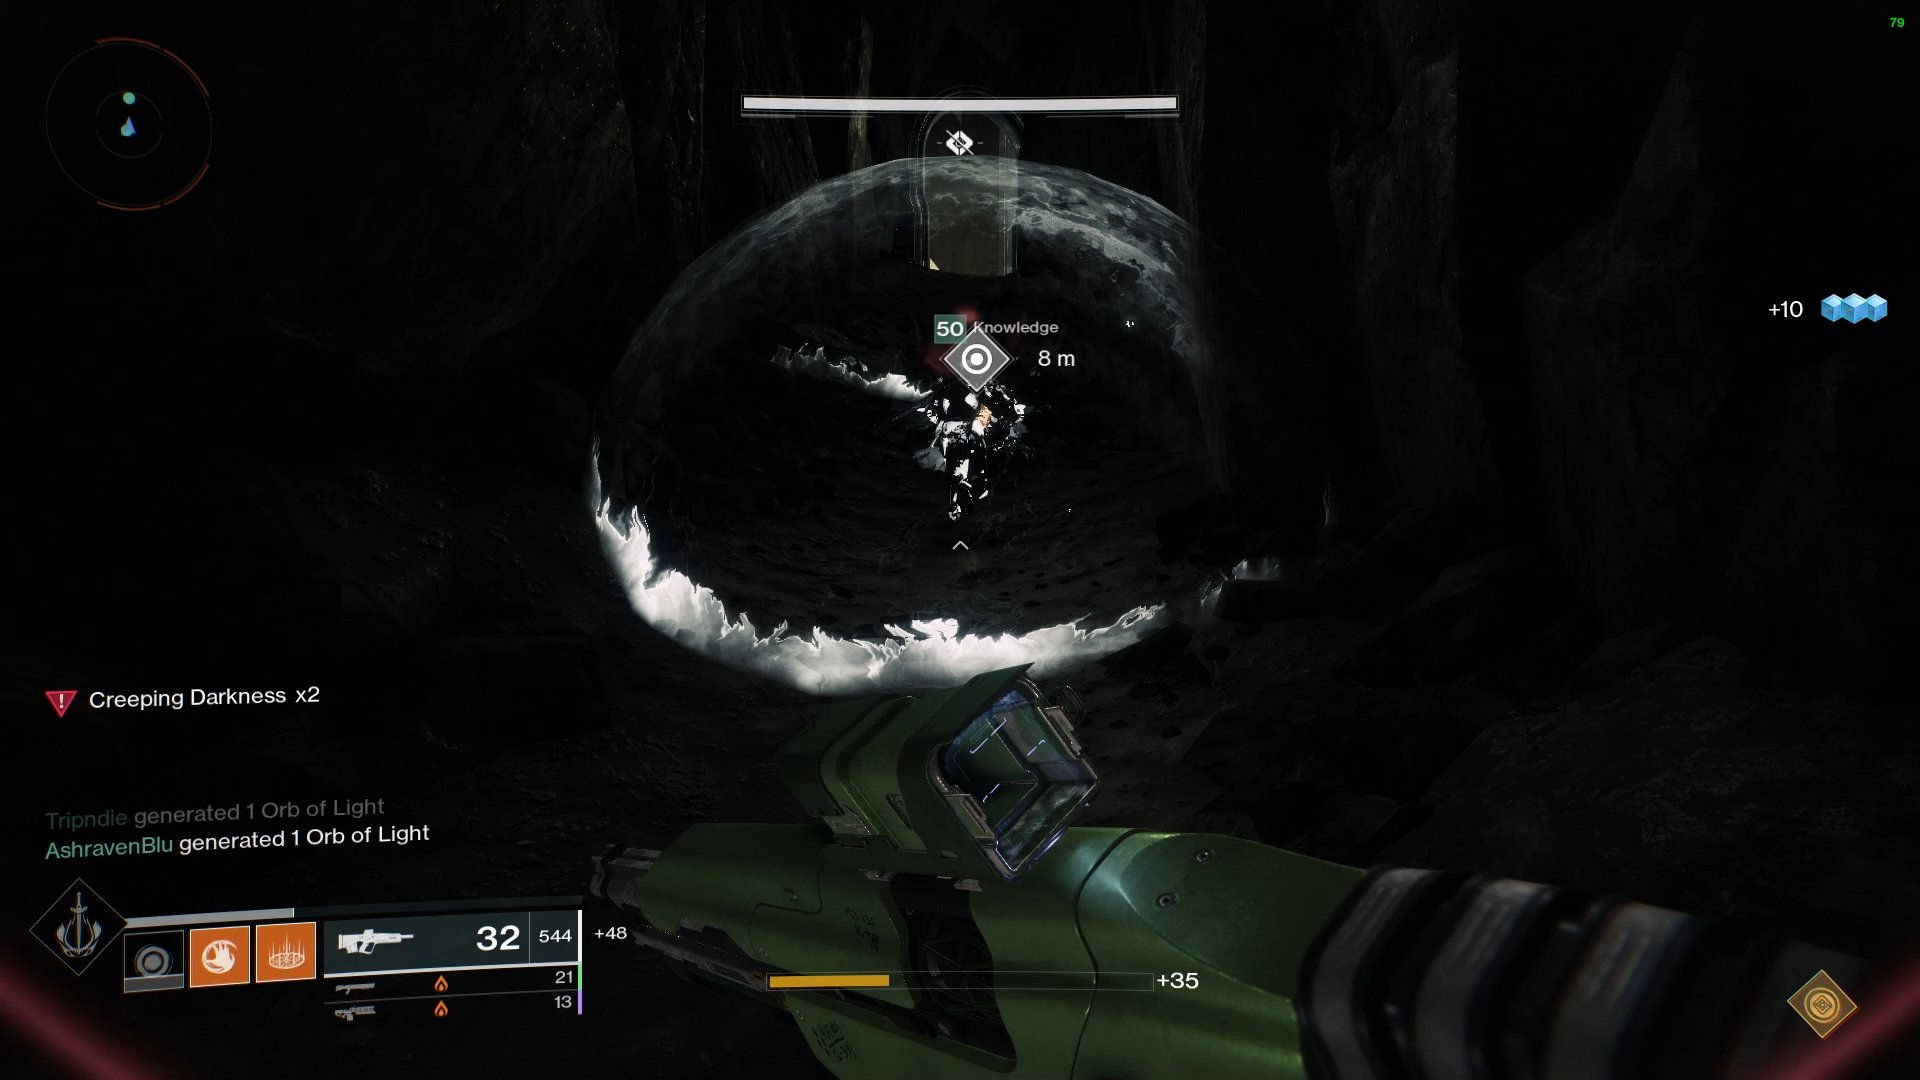 Players must use the tunnels in the Vault section to reach the final drop down to the statue of Riven.